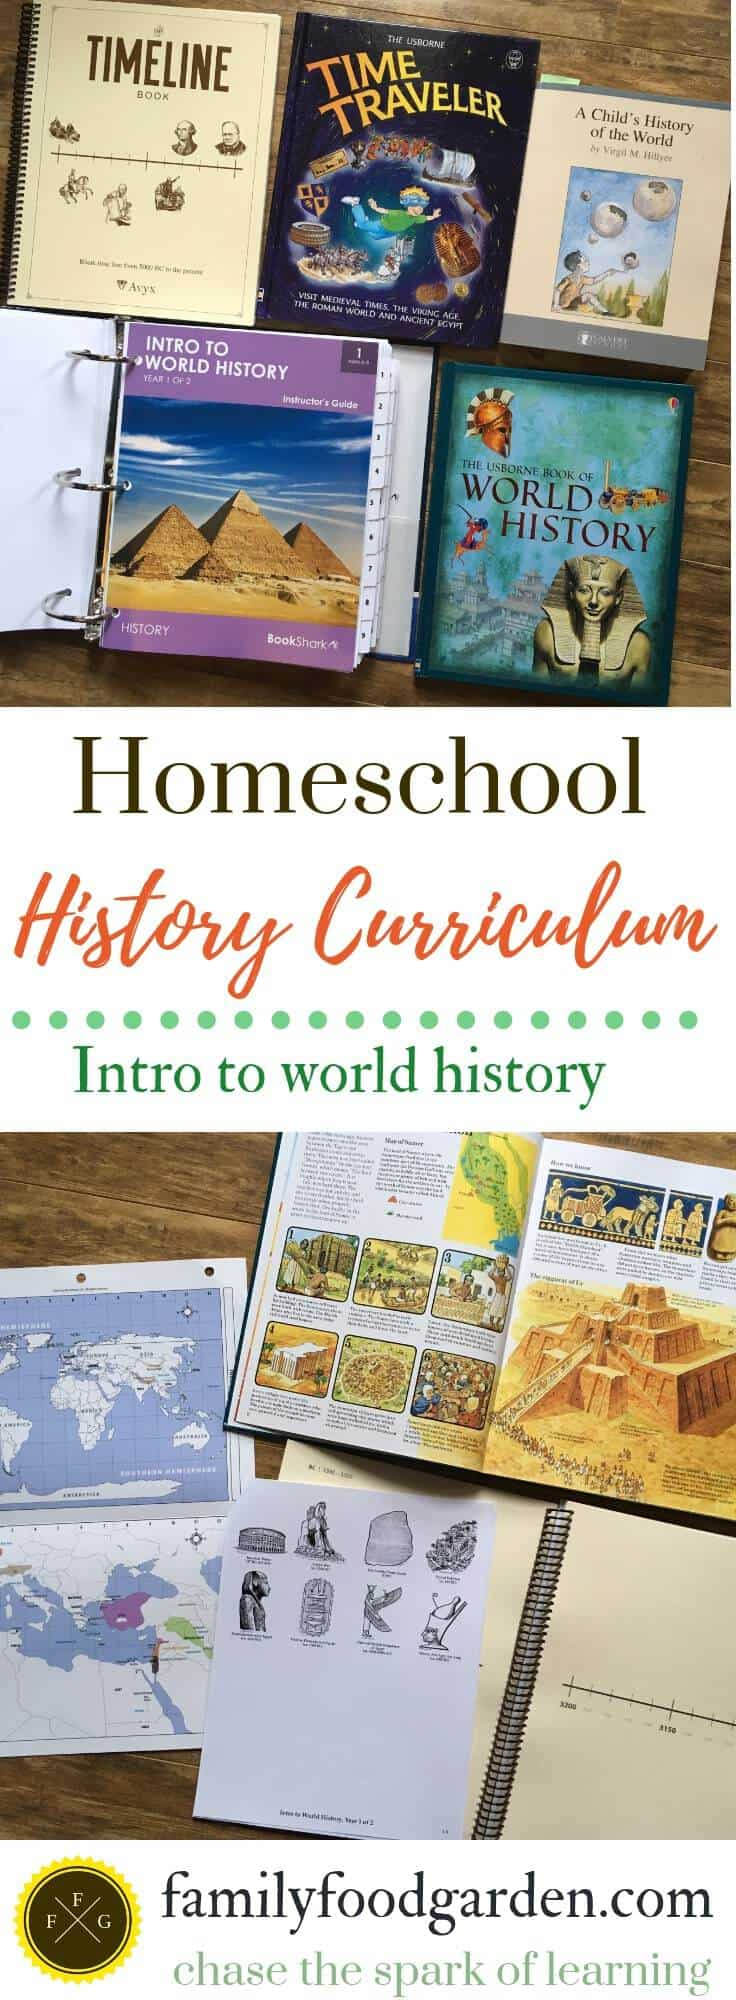 Homeschool History Curriculum from Bookshark